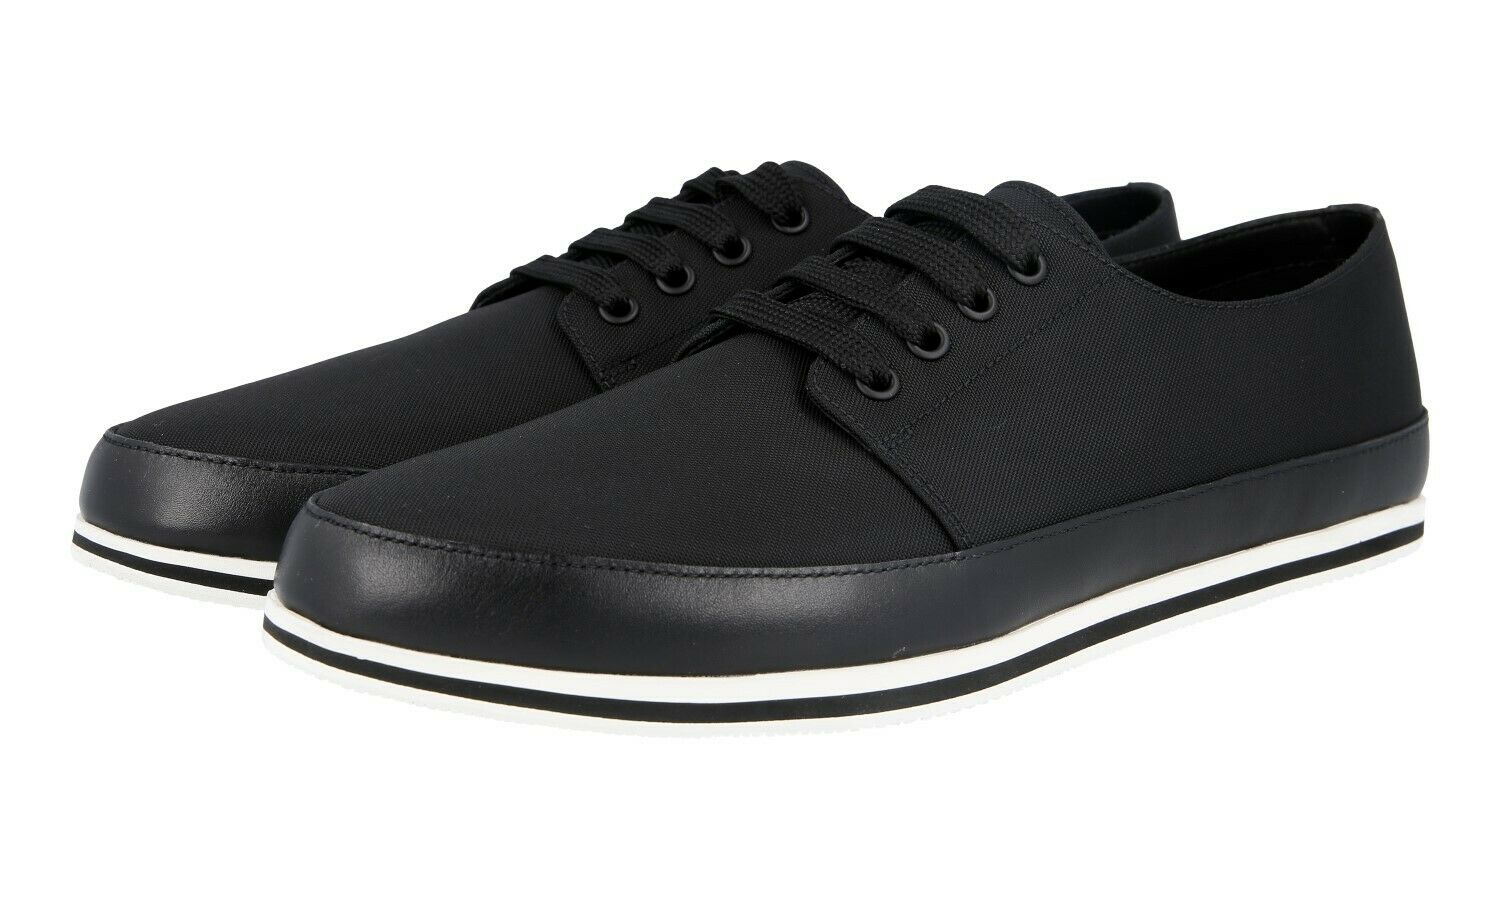 AUTH PRADA LACE-UP SHOES 4E3260 BLACK NYLON + LEATHER NEW US 10 EU 43 43,5